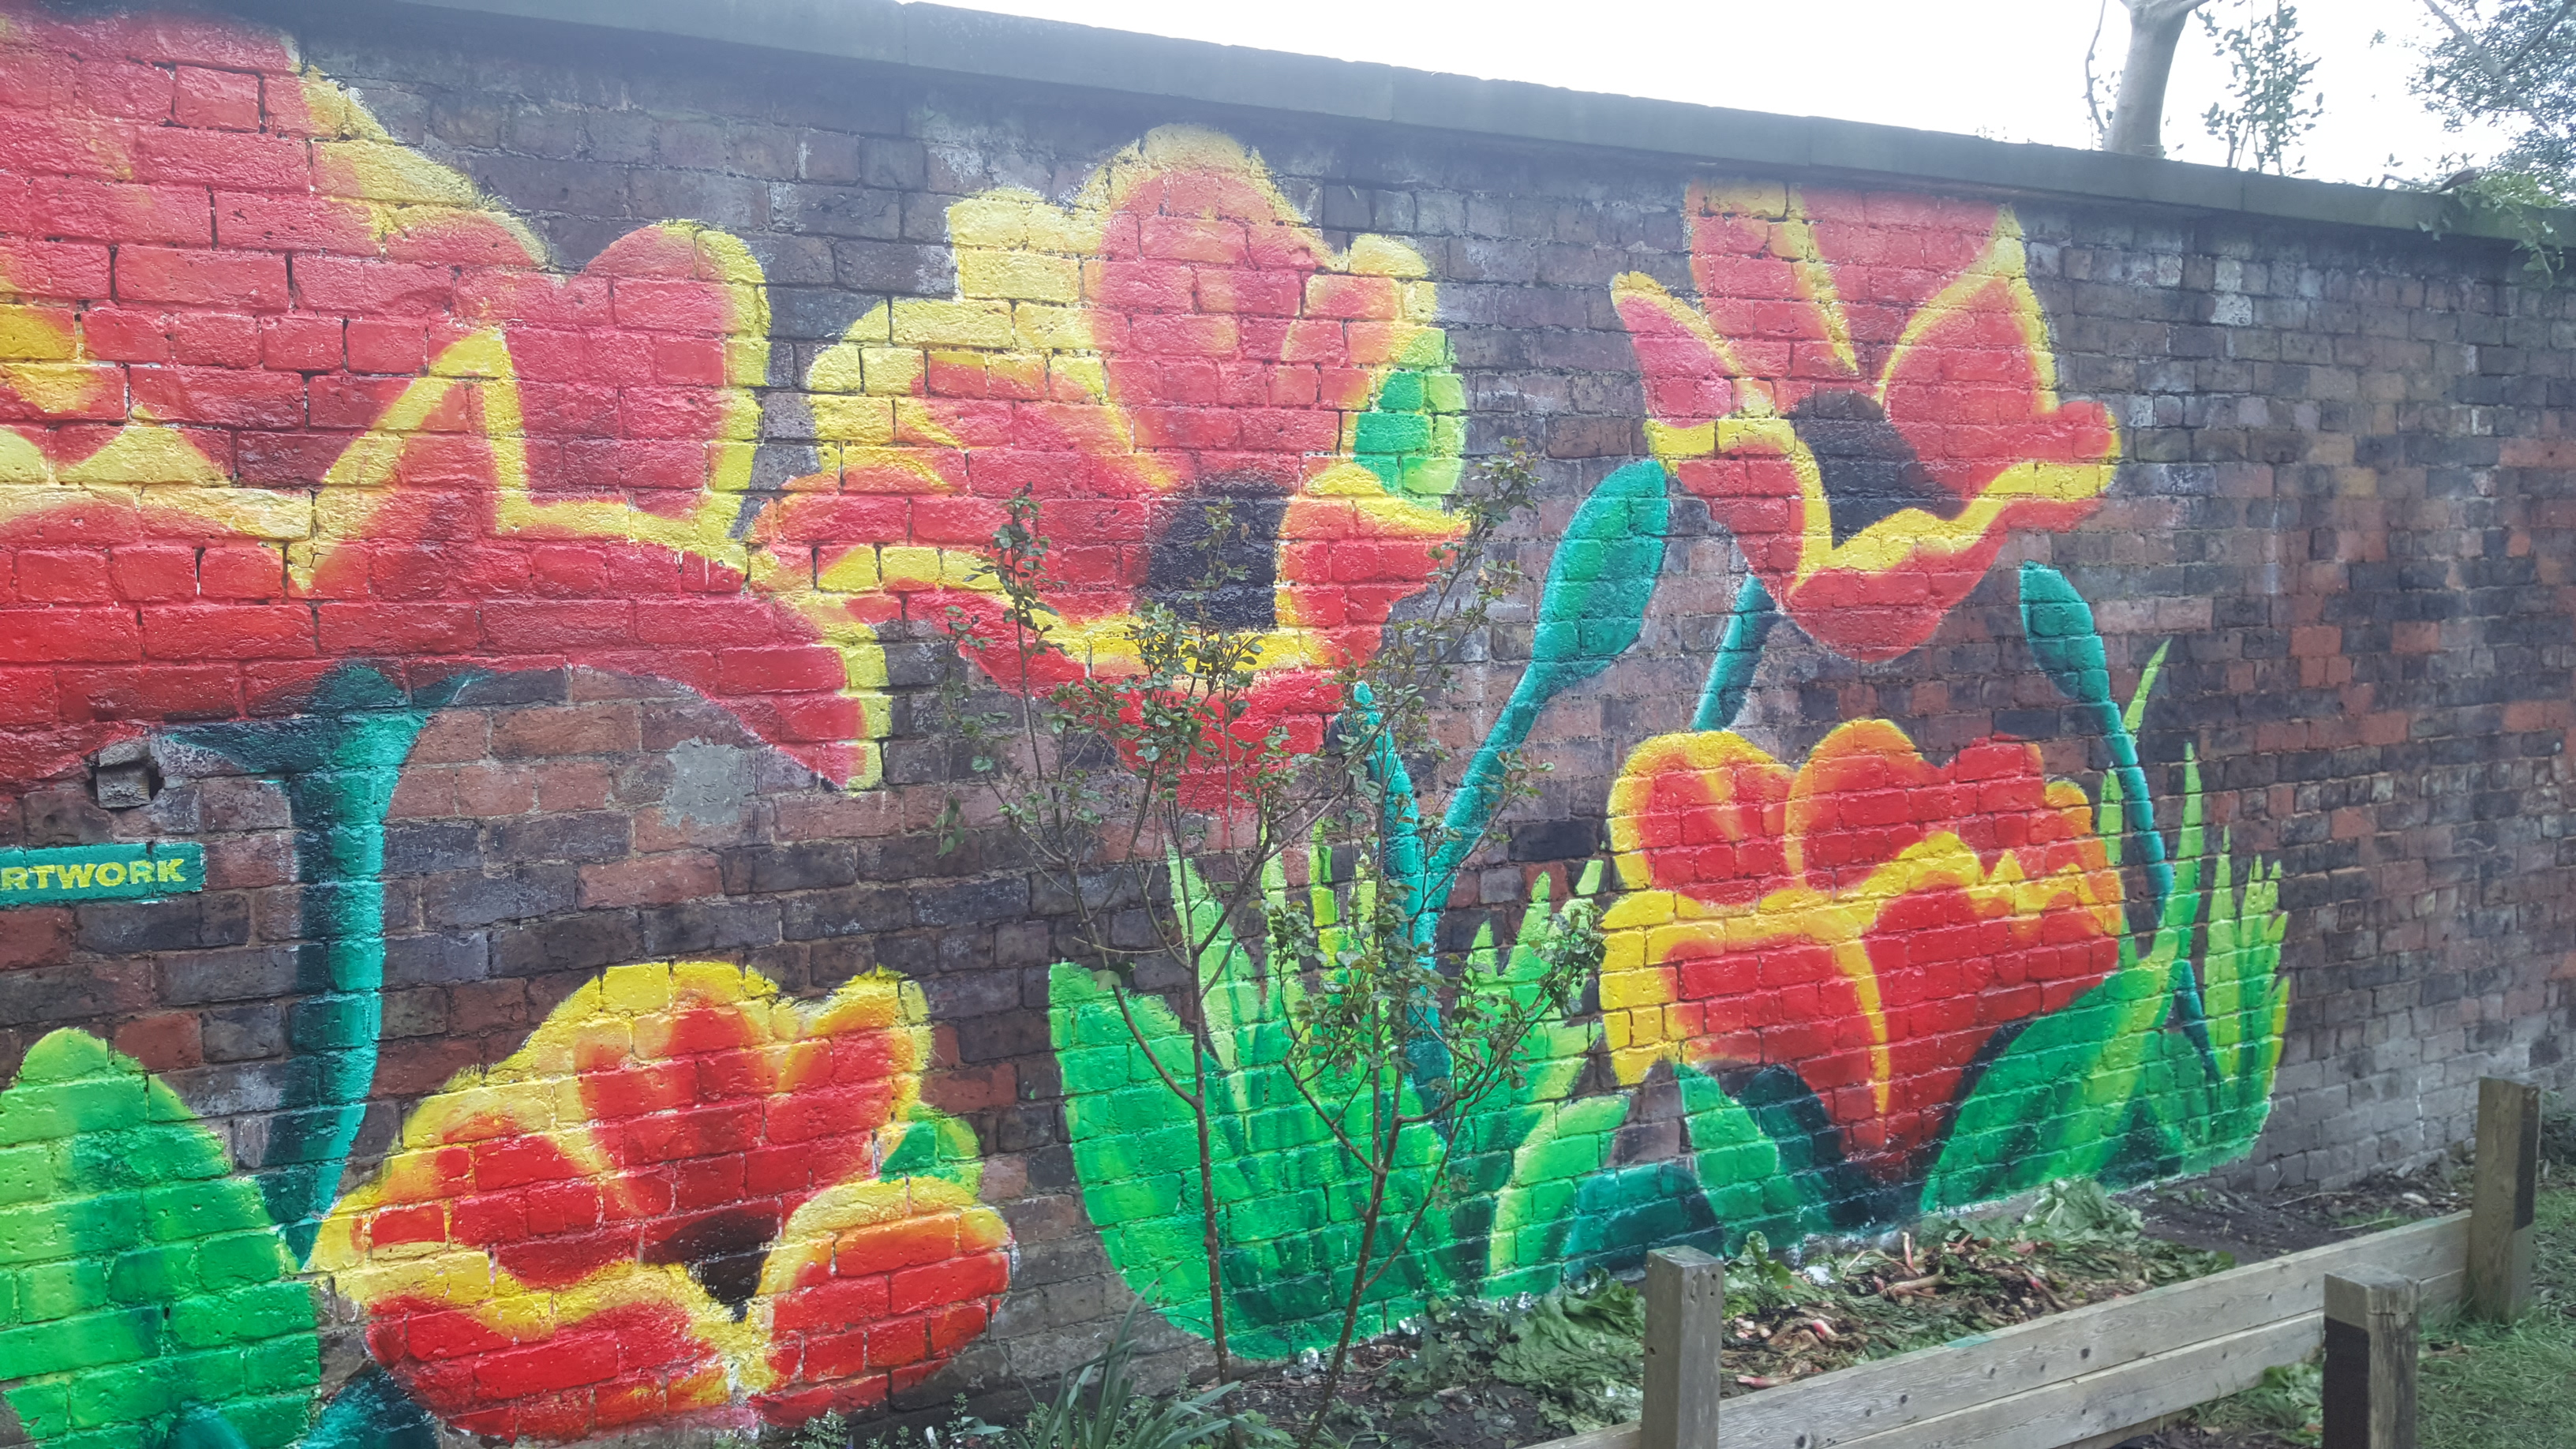 Poppy art graffiti